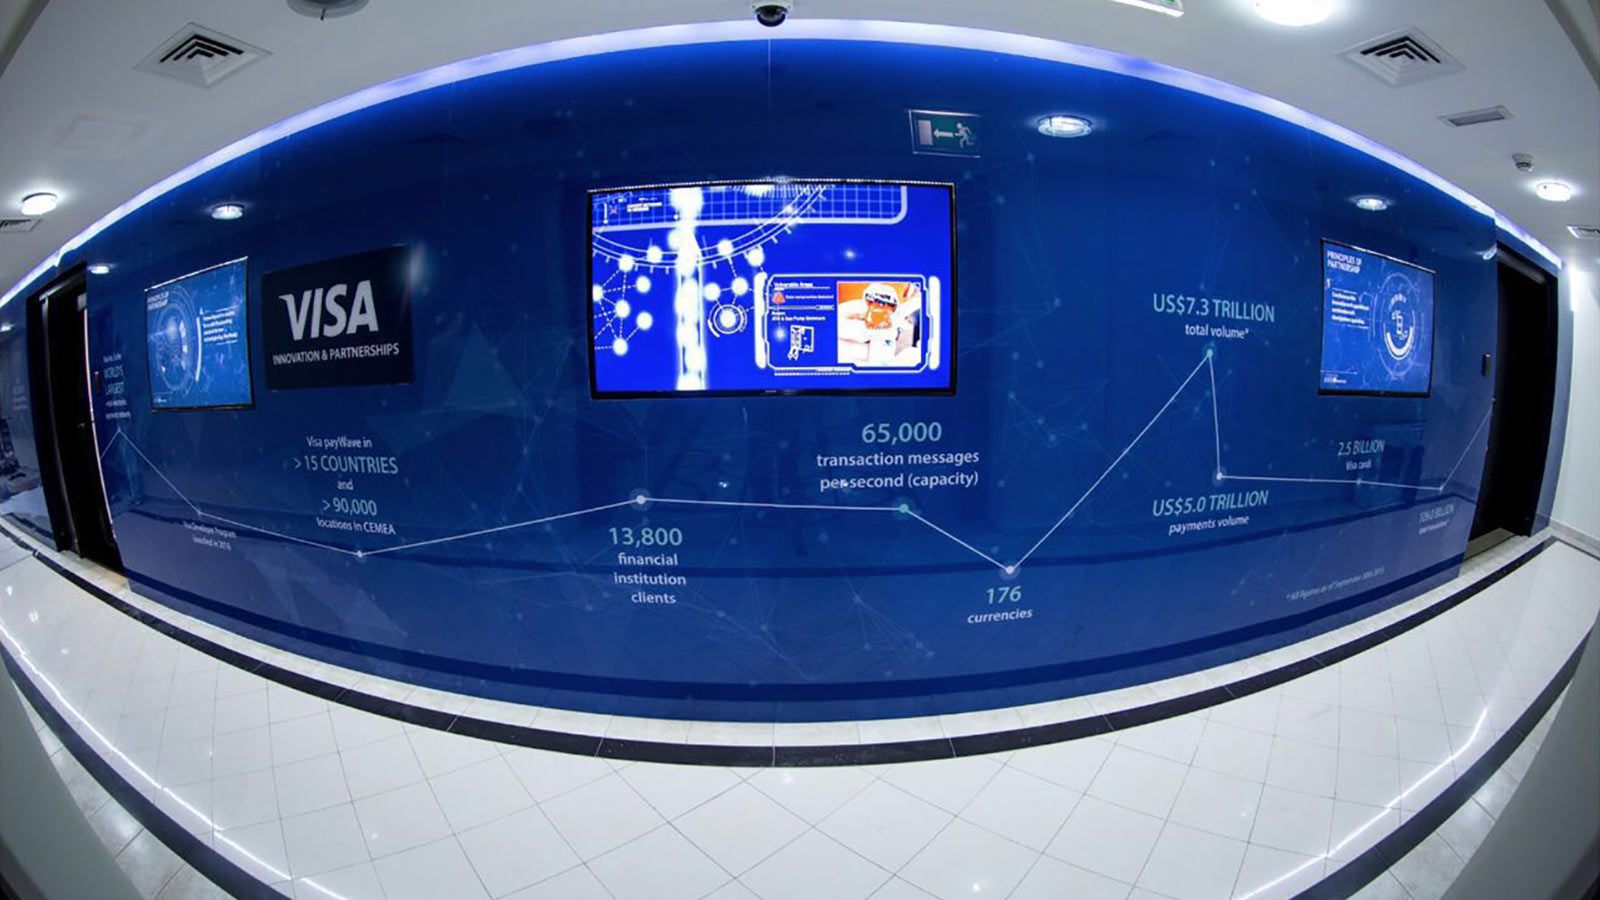 Visa Dubai Innovation center wall